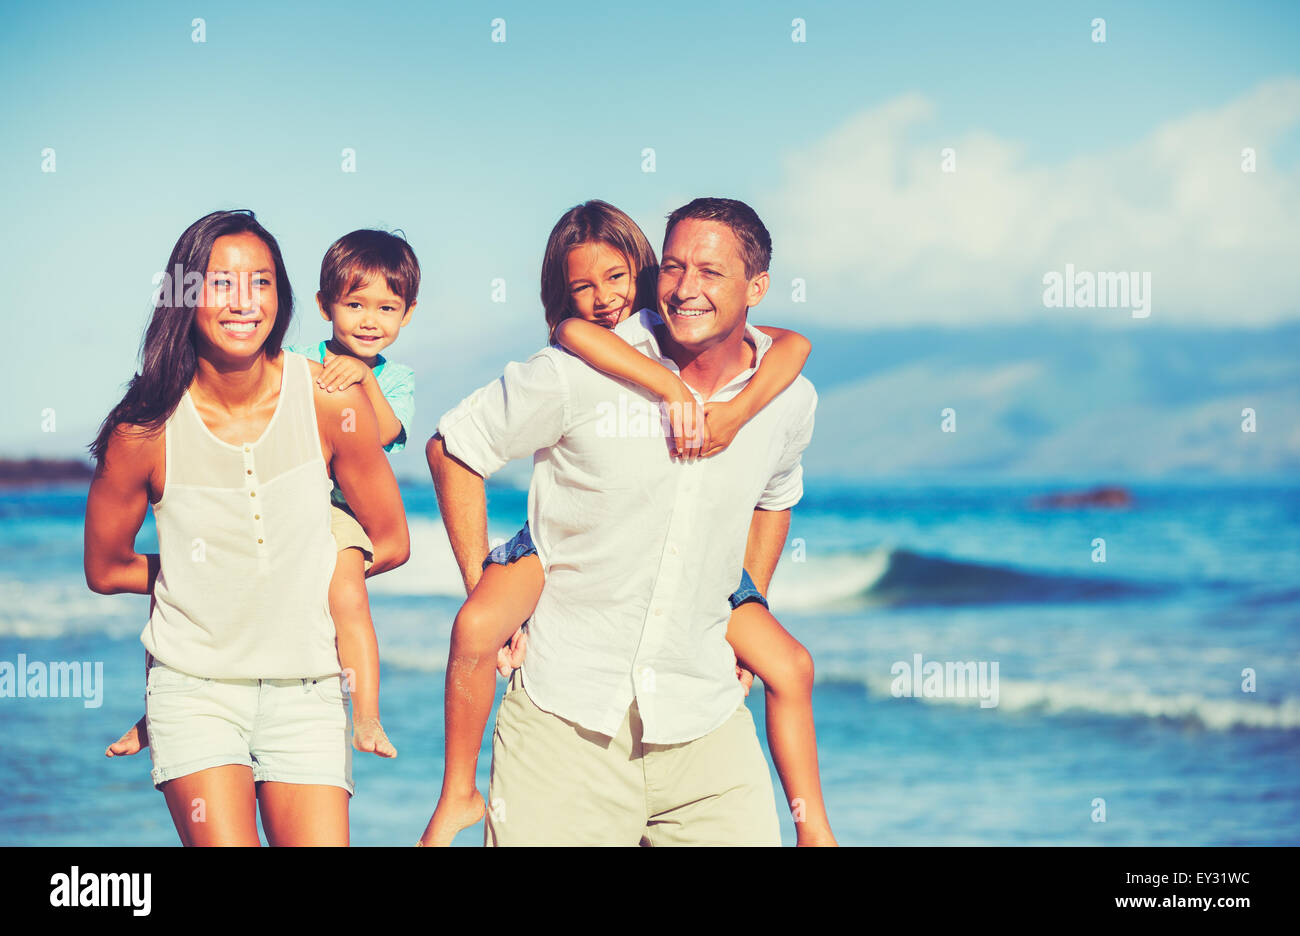 Young Happy Family Having Fun on the Beach Outdoors - Stock Image